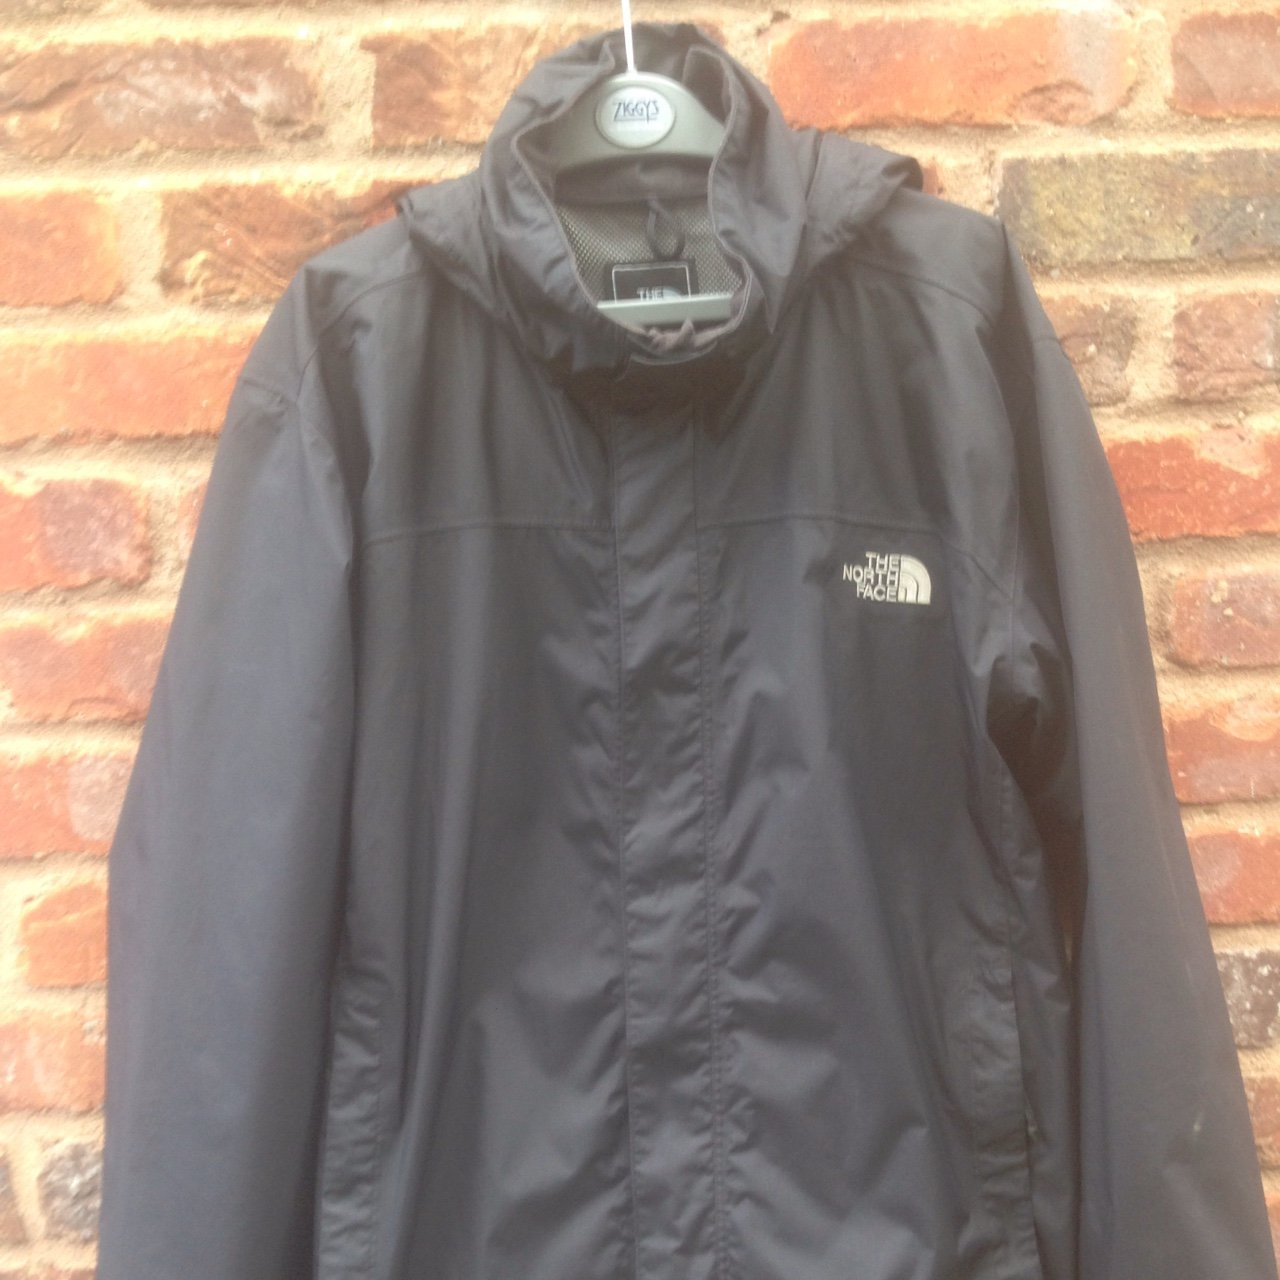 The North Face black coat    Size medium    condition 8 10 - Depop 204aca50a127